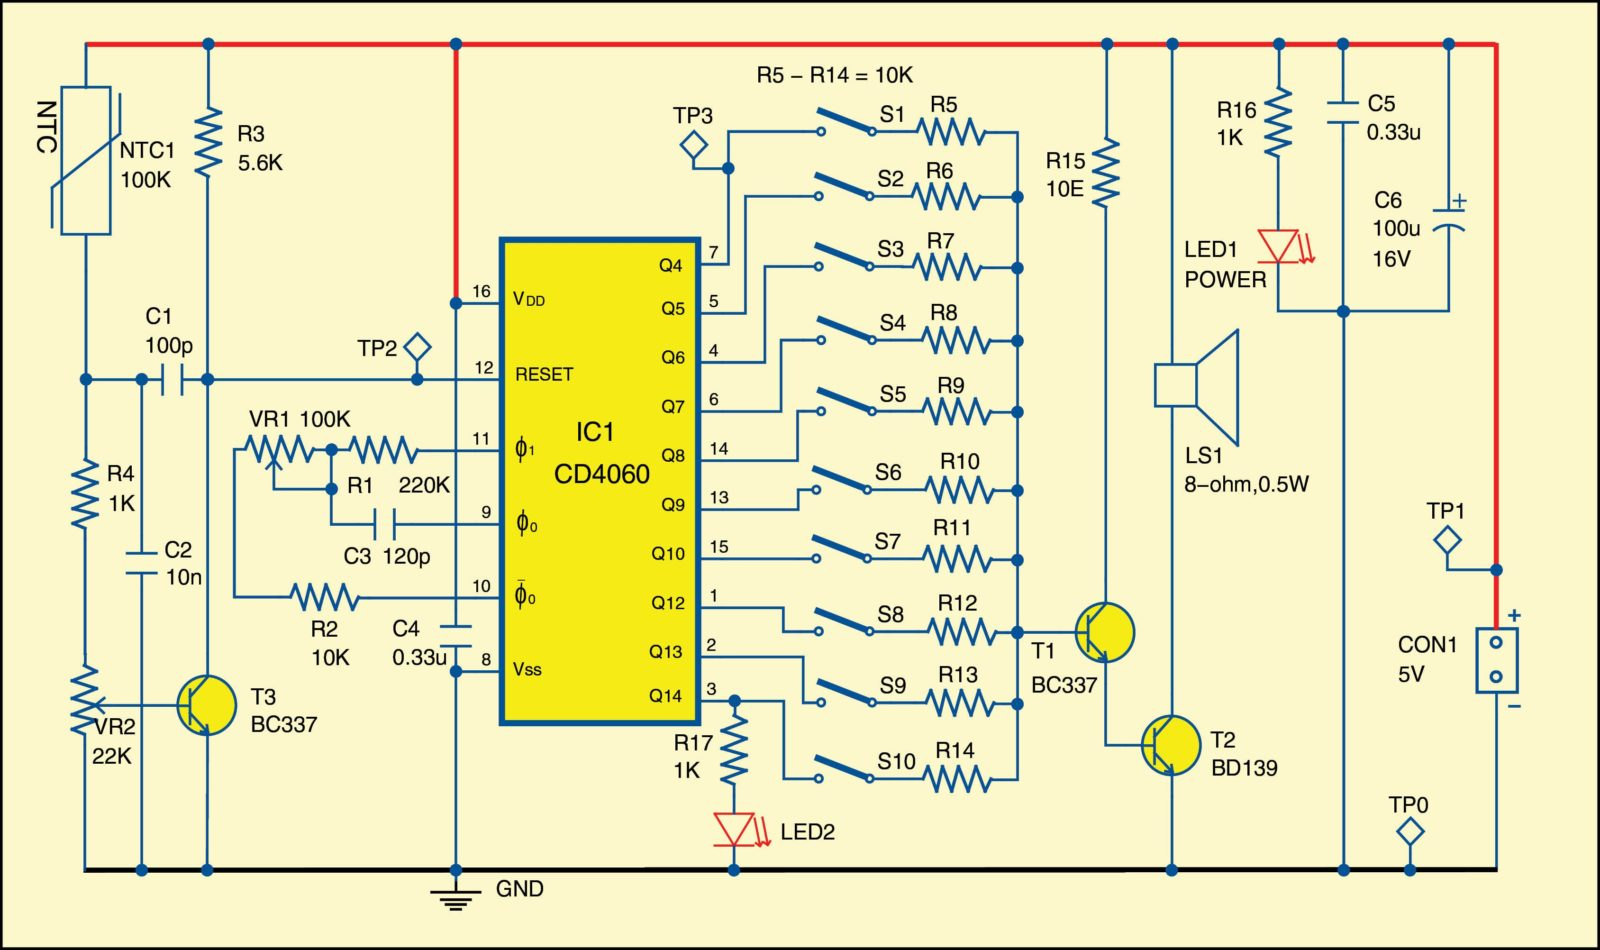 Fig. 1: Circuit diagram of multi-tone configurable alarm